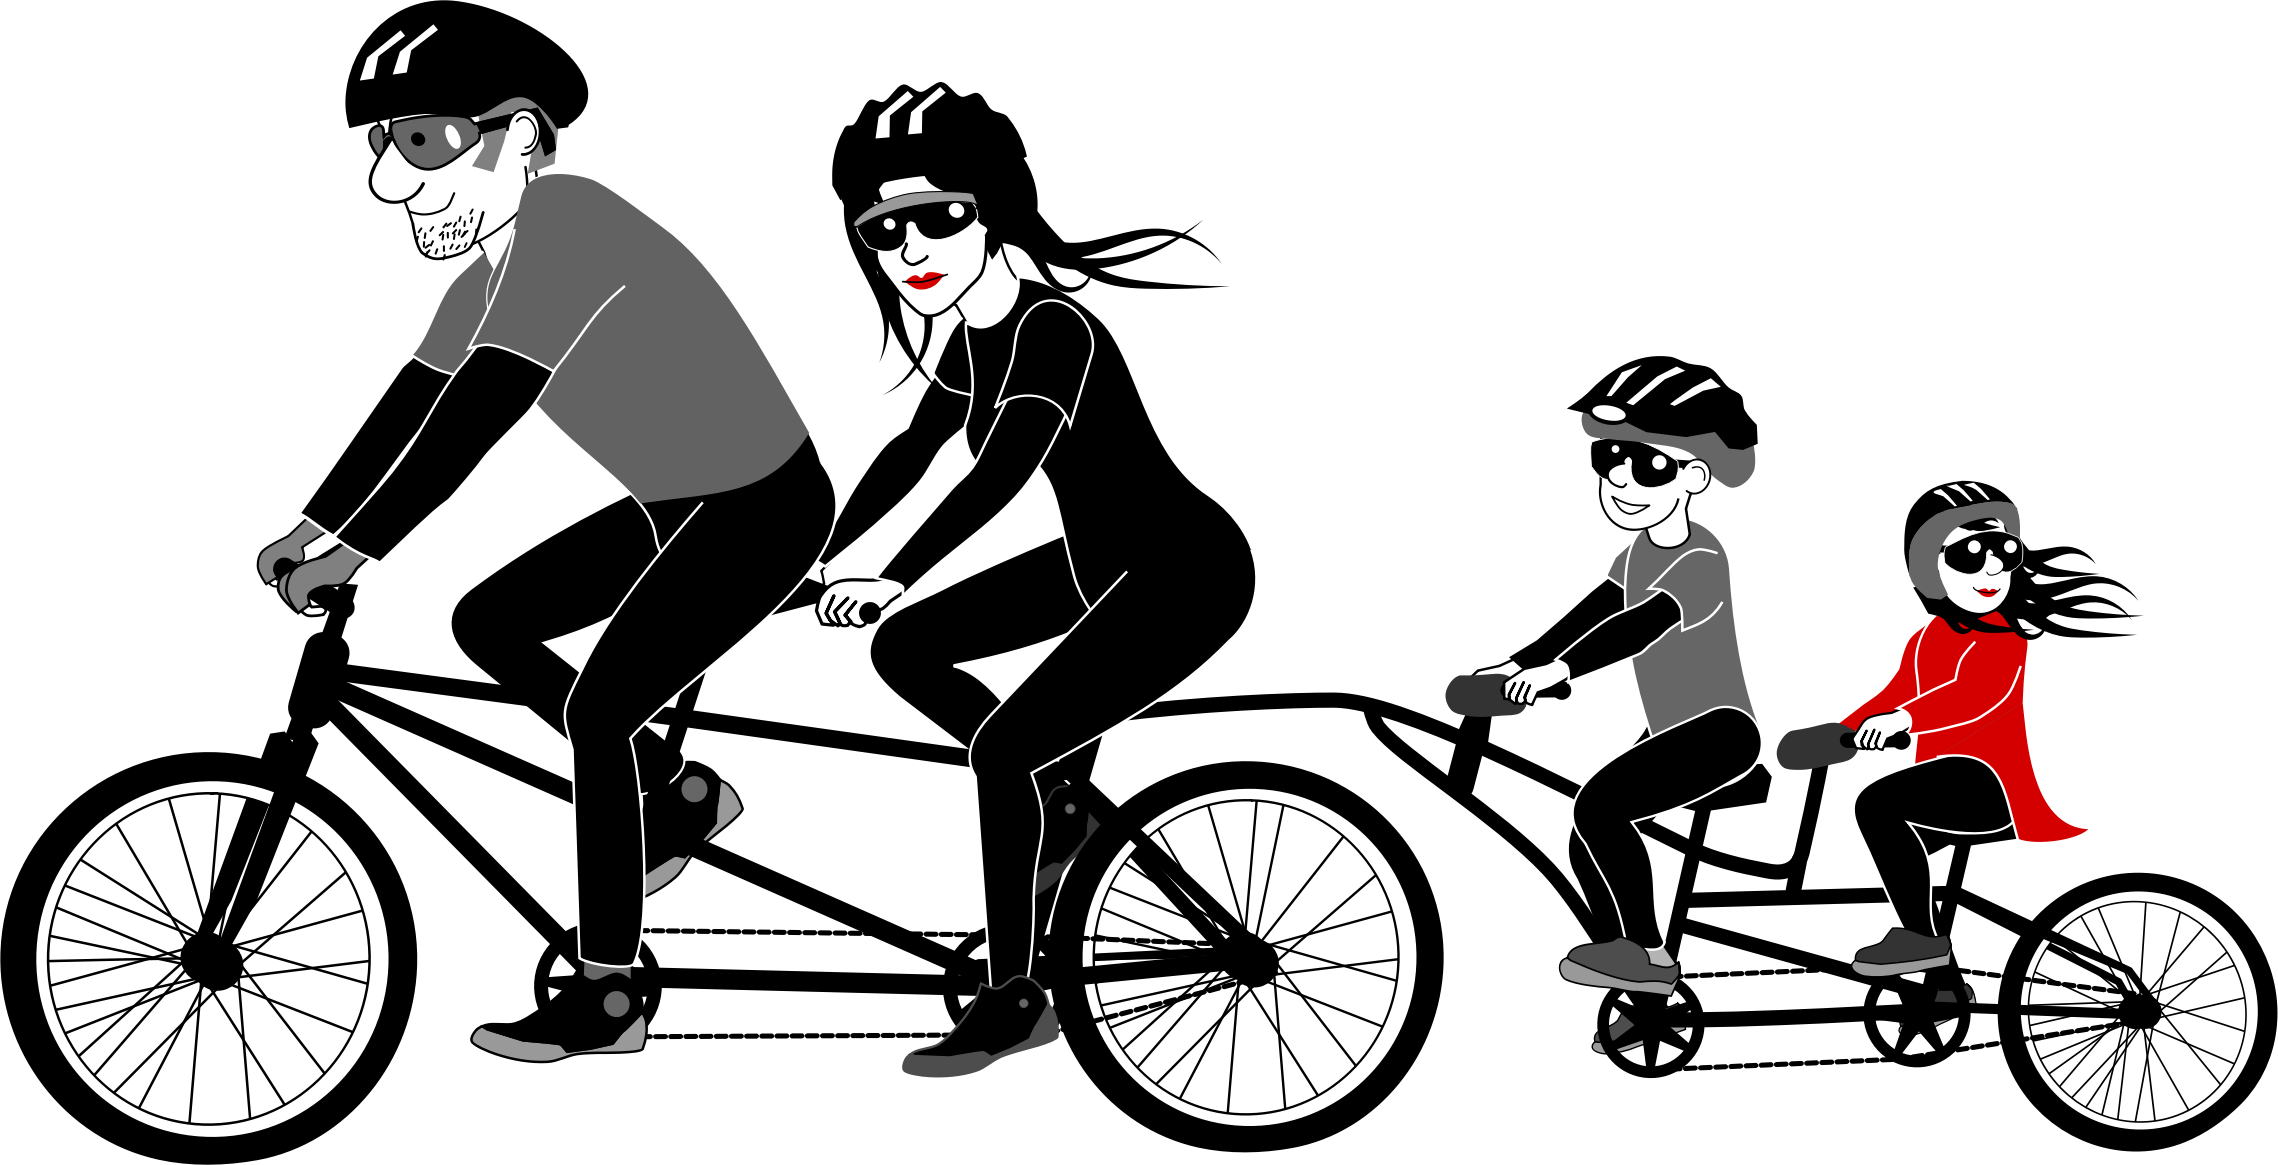 Engagement clipart tandem bicycle. Family riding by kisanti